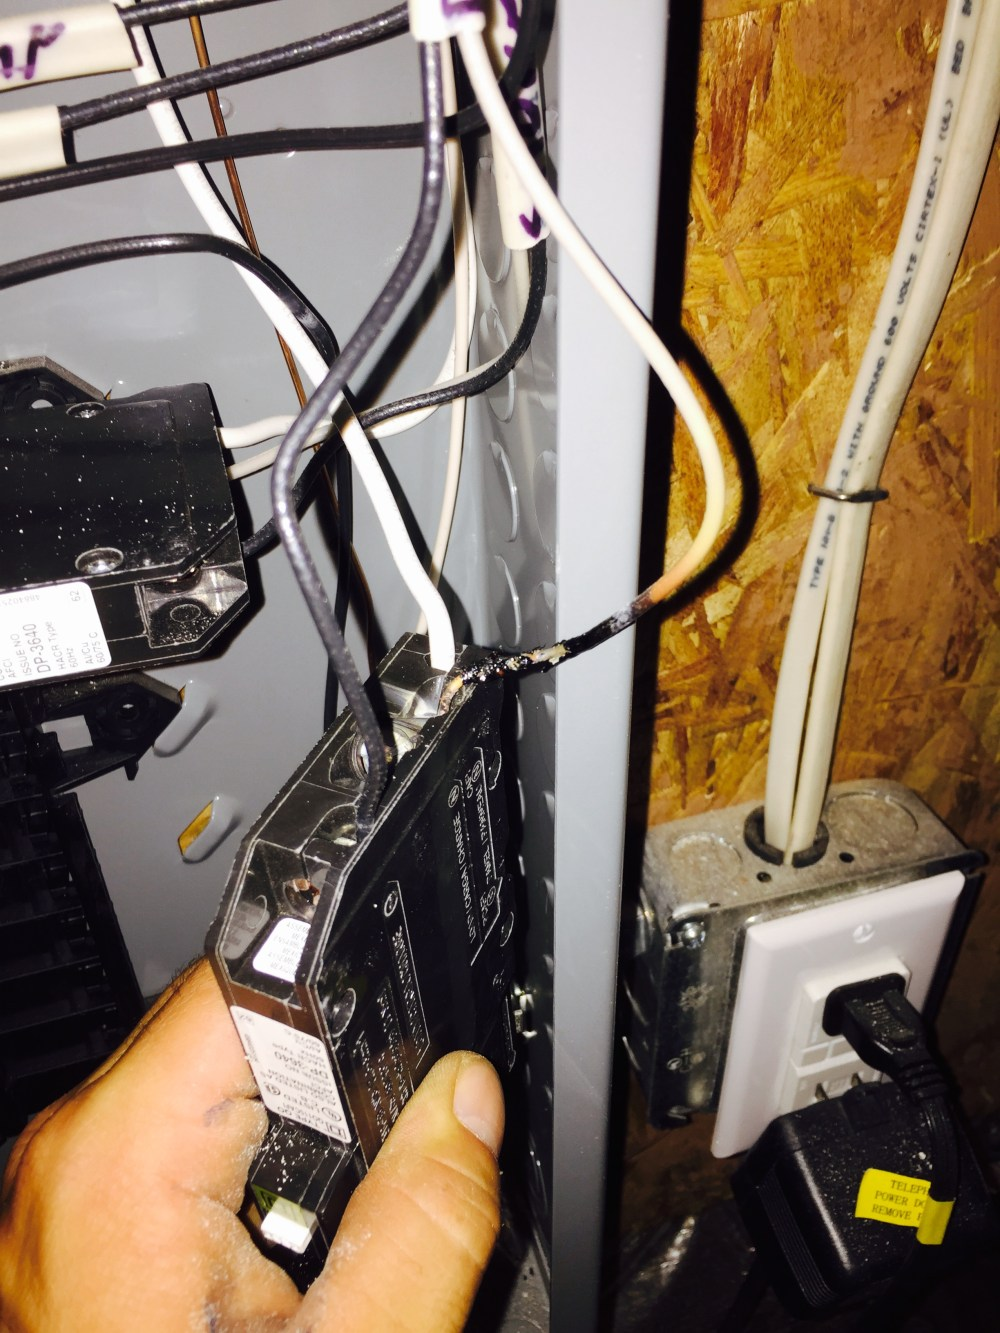 medium resolution of electrical wiring fires wiring diagram show can electrical wiring cause fires